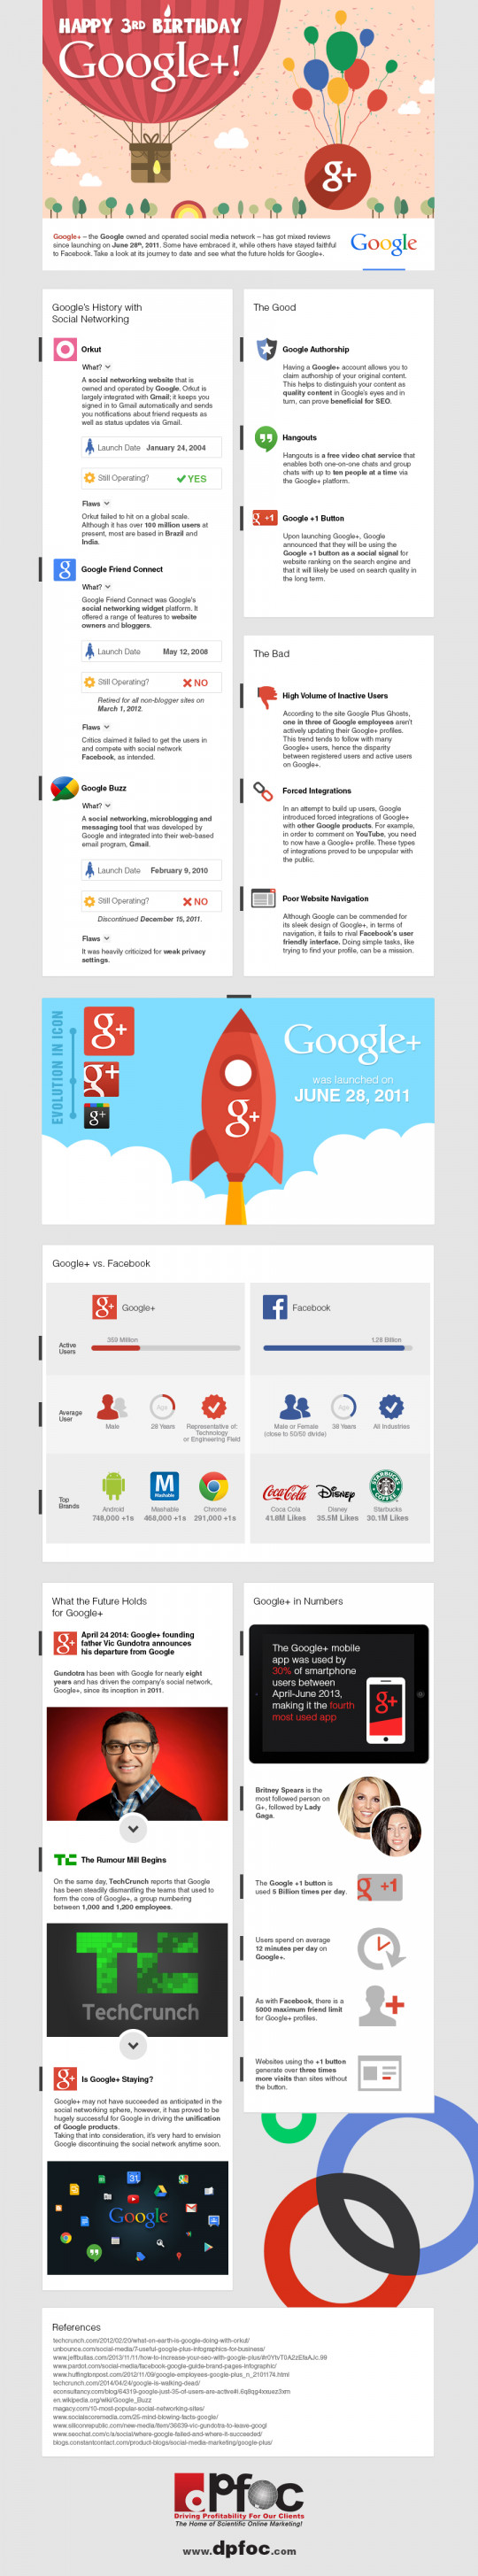 Happy 3rd Birthday Google+